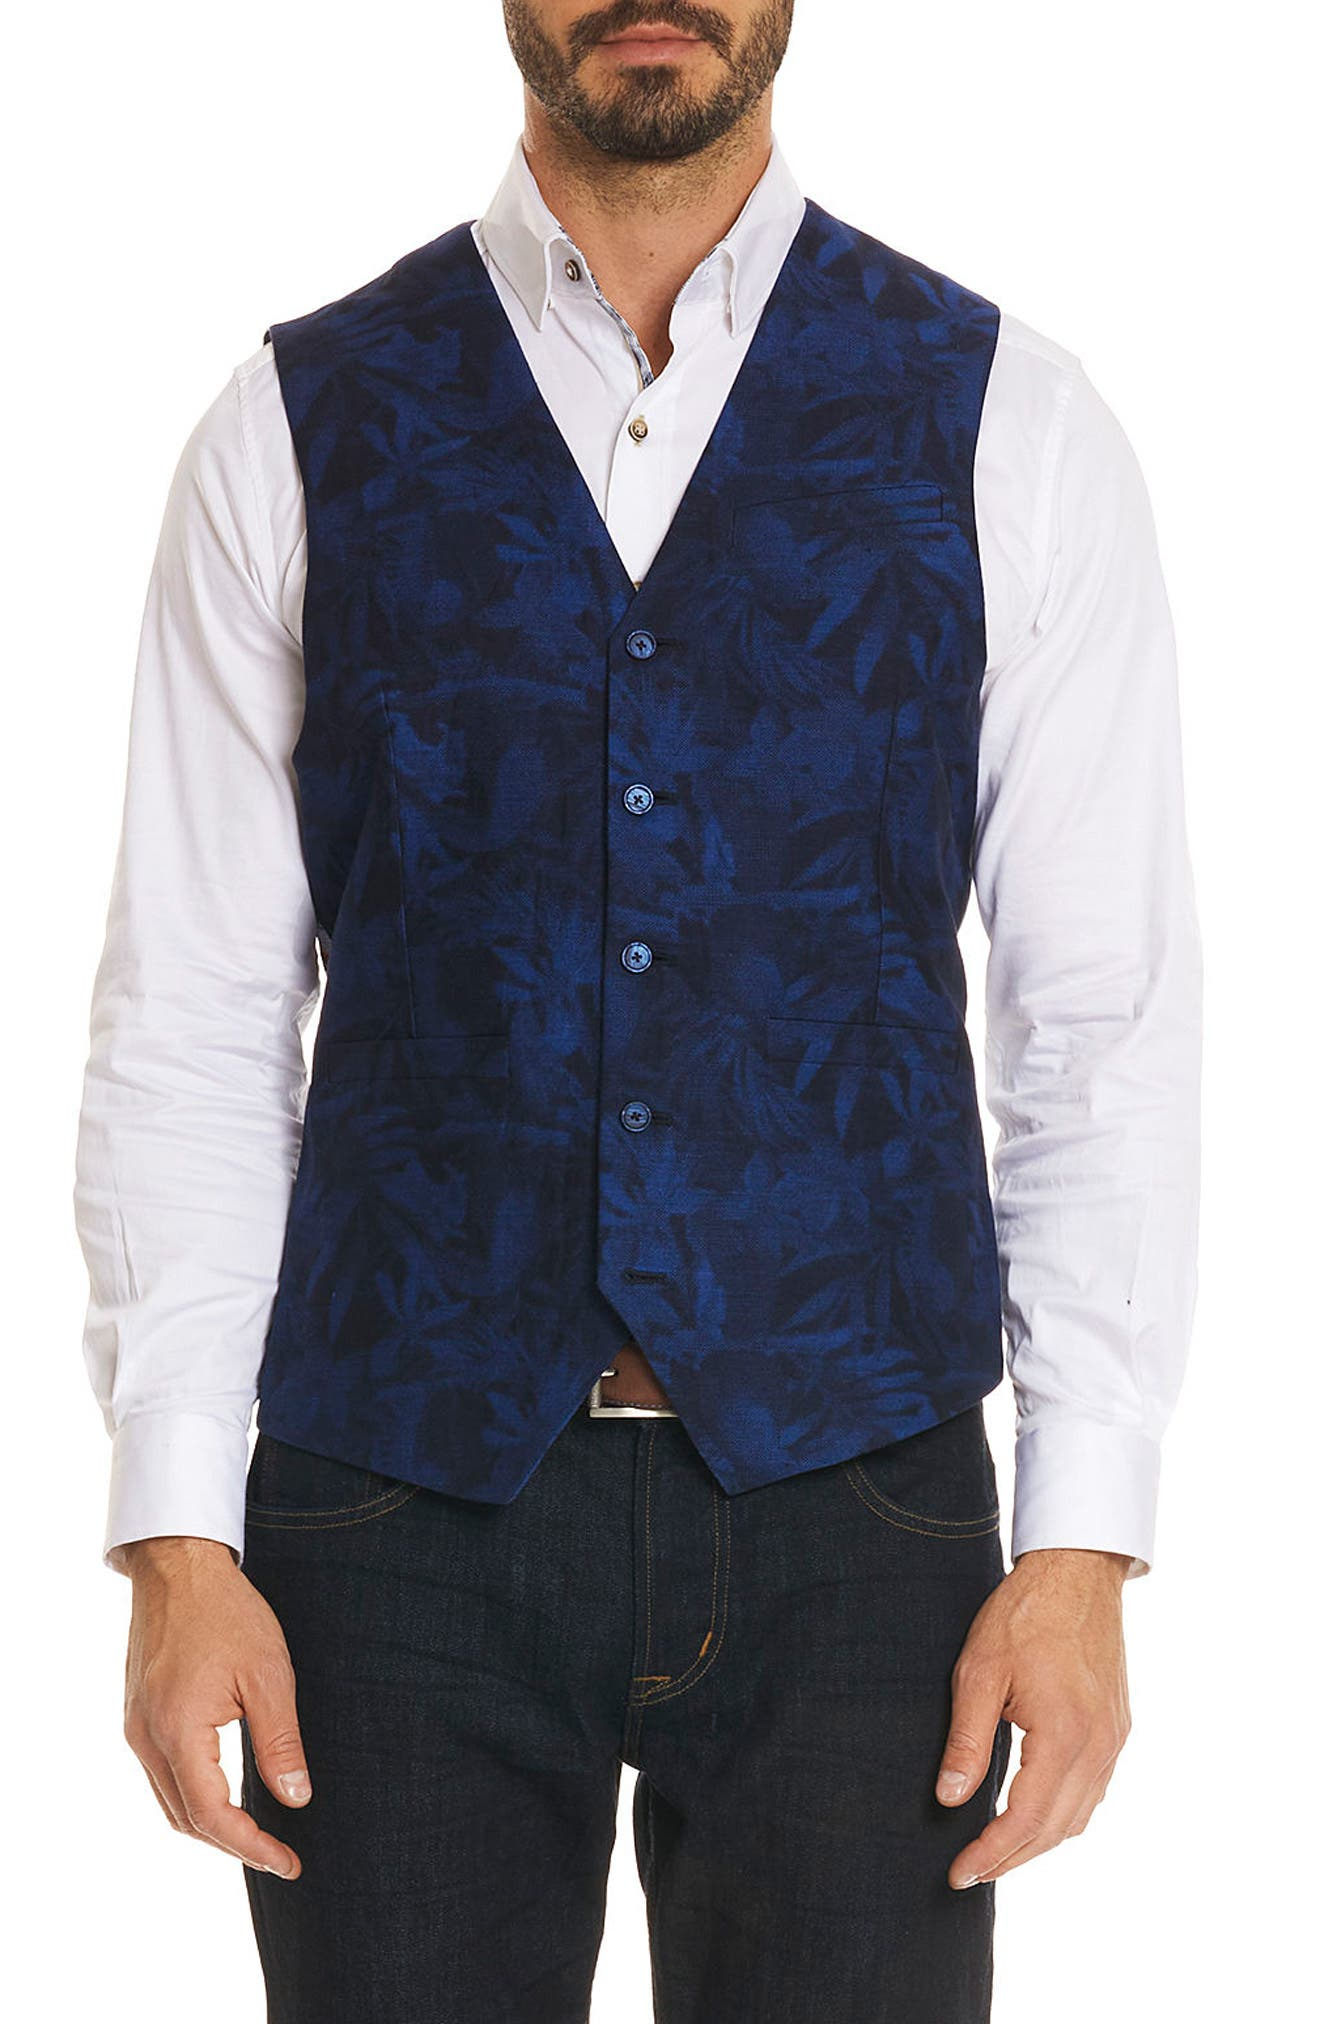 Nunez Regular Fit Linen & Cotton Vest,                             Main thumbnail 1, color,                             Blue